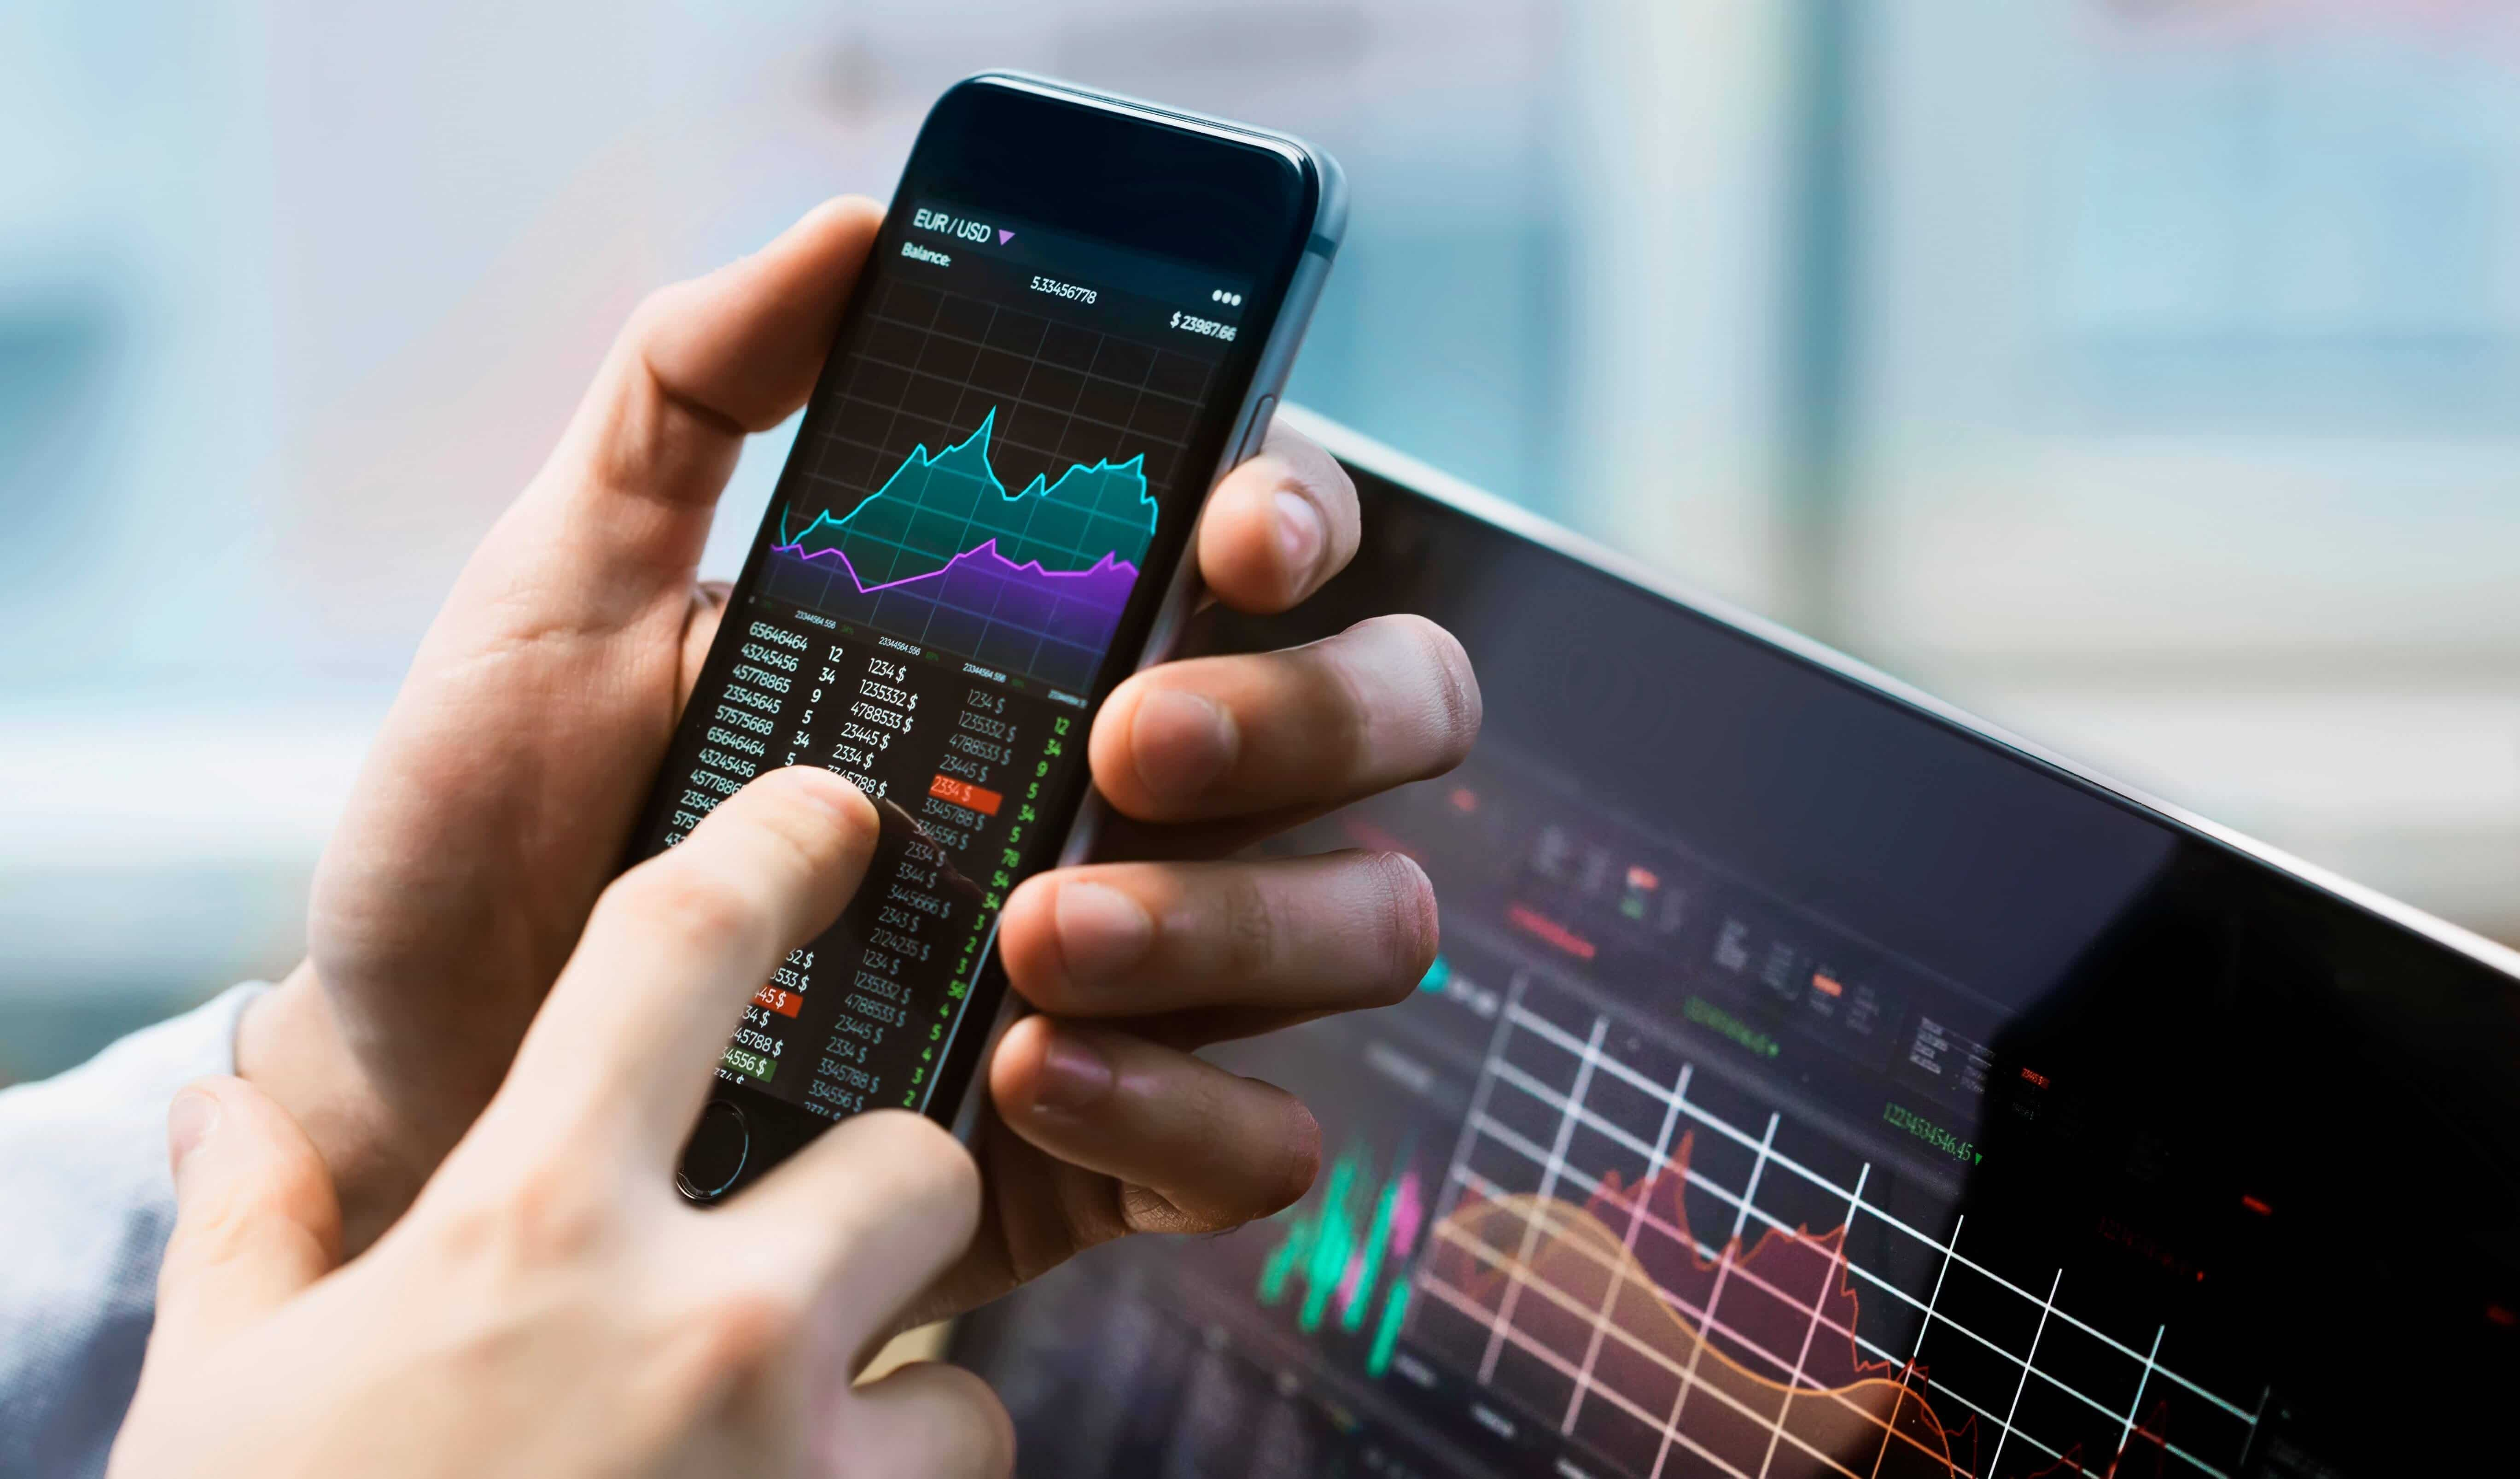 Shares on stock market